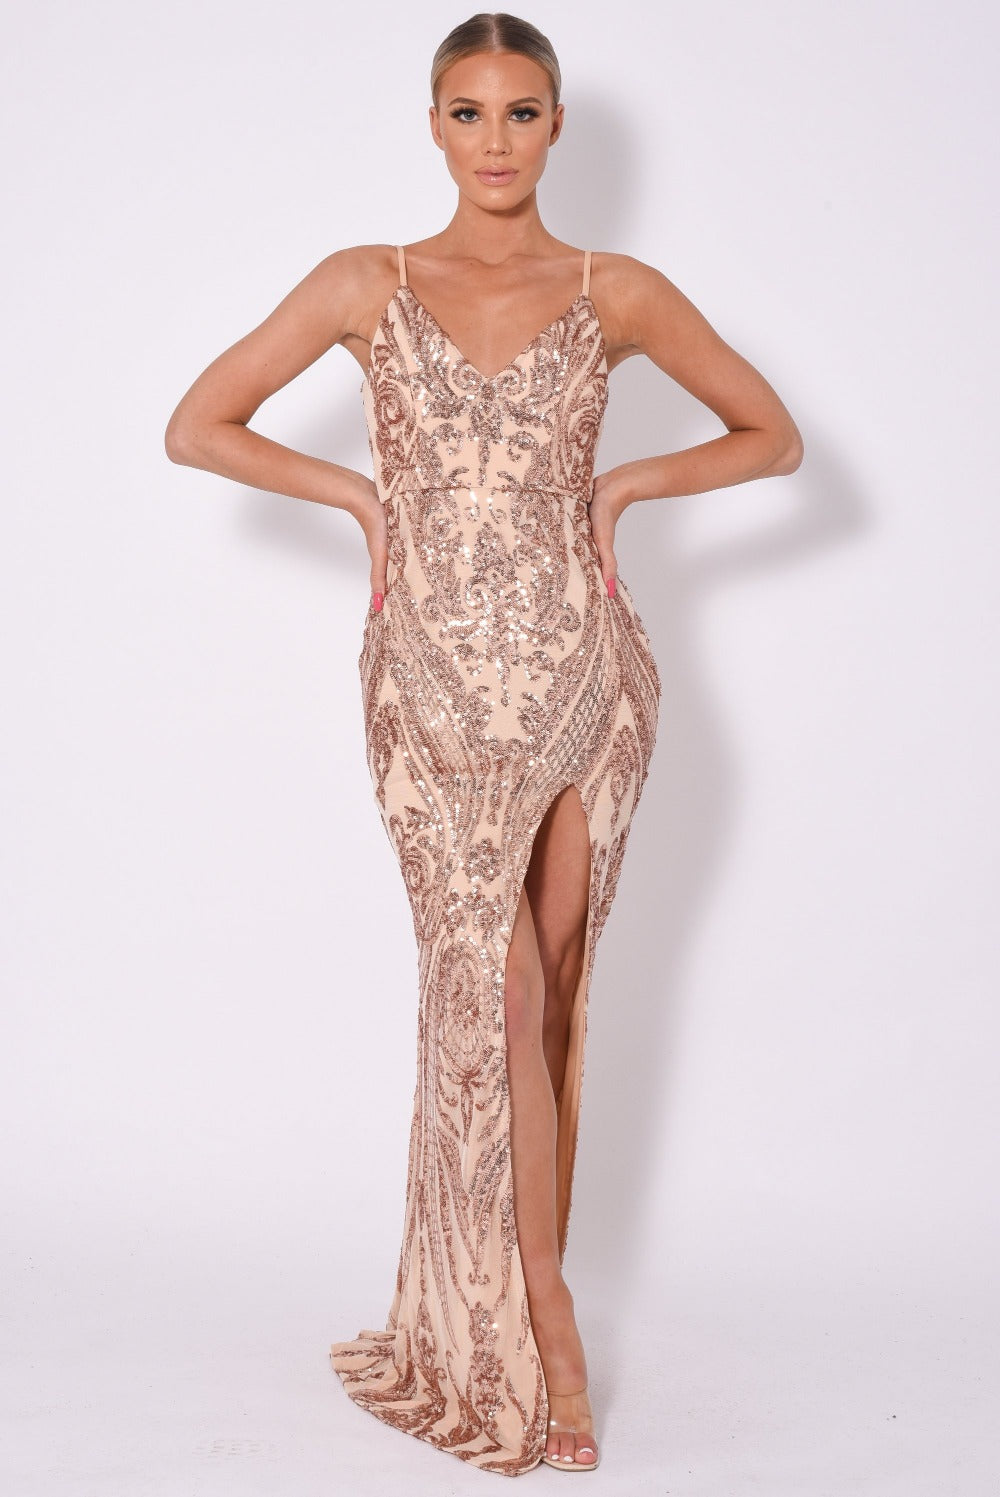 Outshine Vip Rose Gold Nude Sequin Illusion Slit Maxi Dress